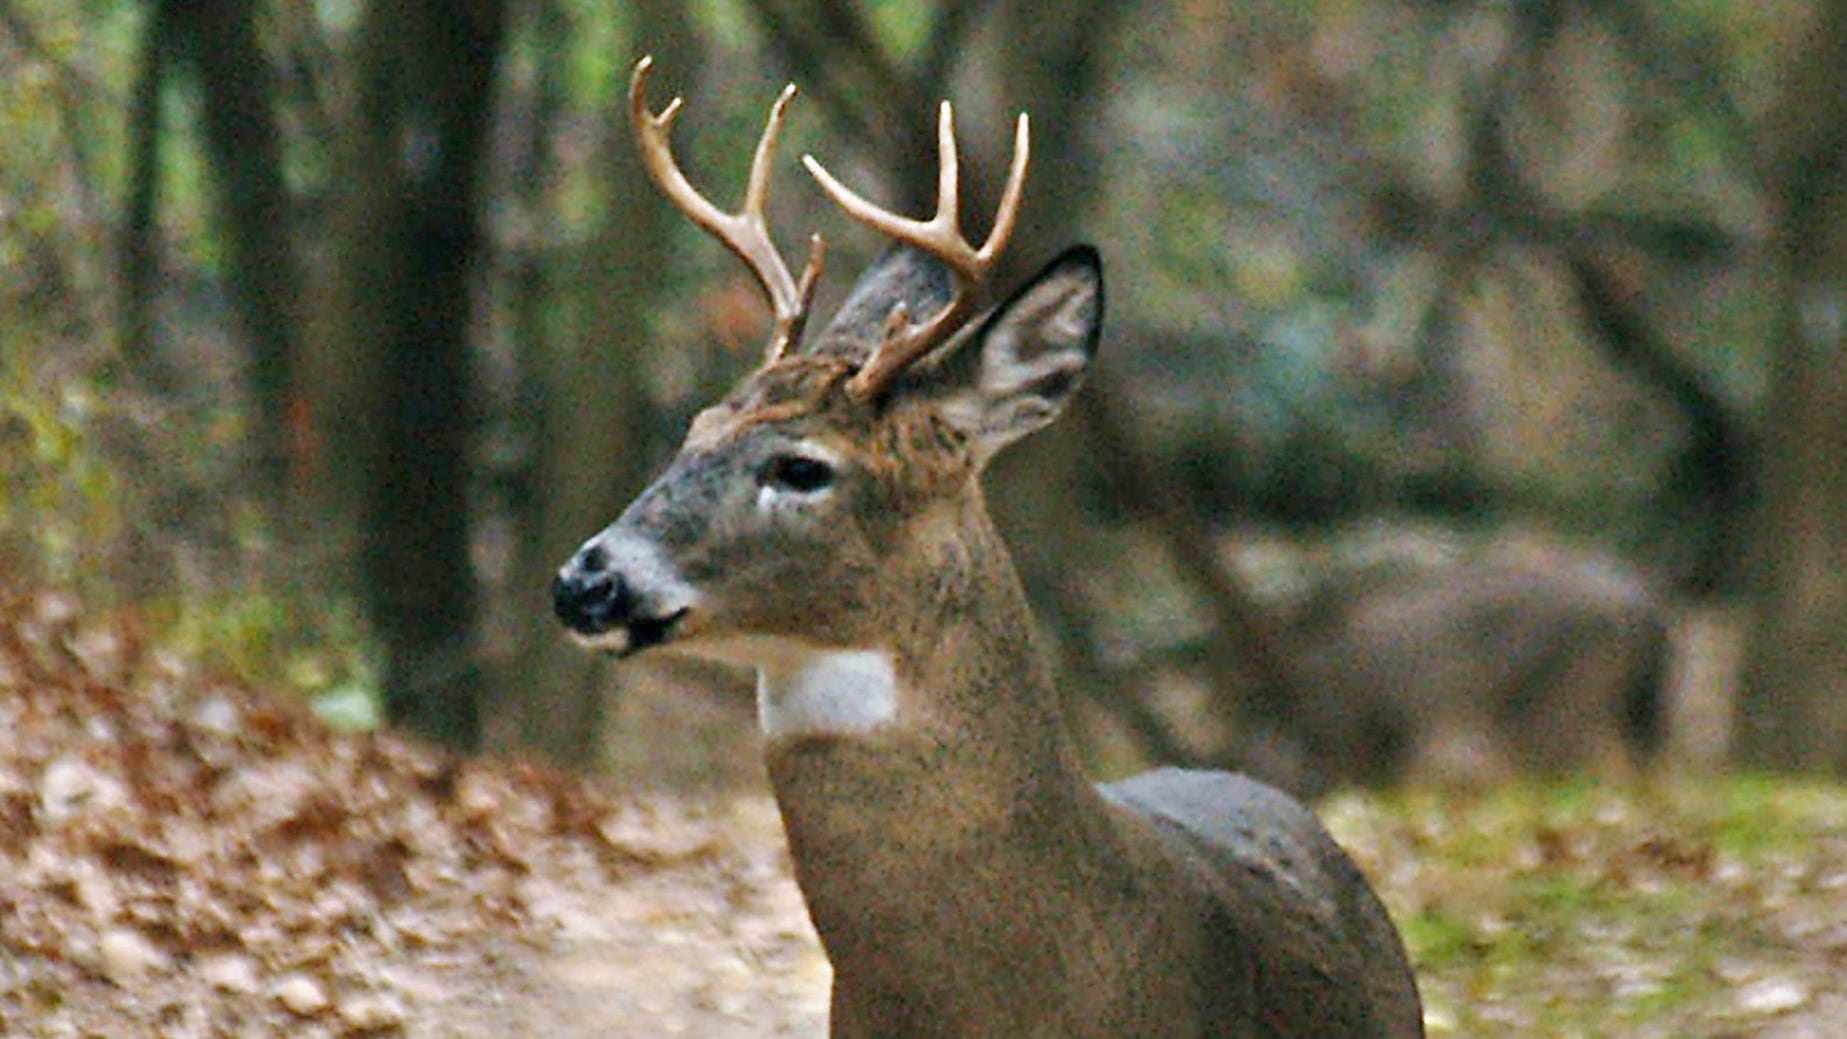 In this Nov. 8, 2005 file photo, a yearling buck is seen in St. Paul, Minn. Some Minnesota state lawmakers want to crack down on deer farms as concern grows about the stubborn persistence of chronic wasting disease among wild deer in a couple pockets of the state.